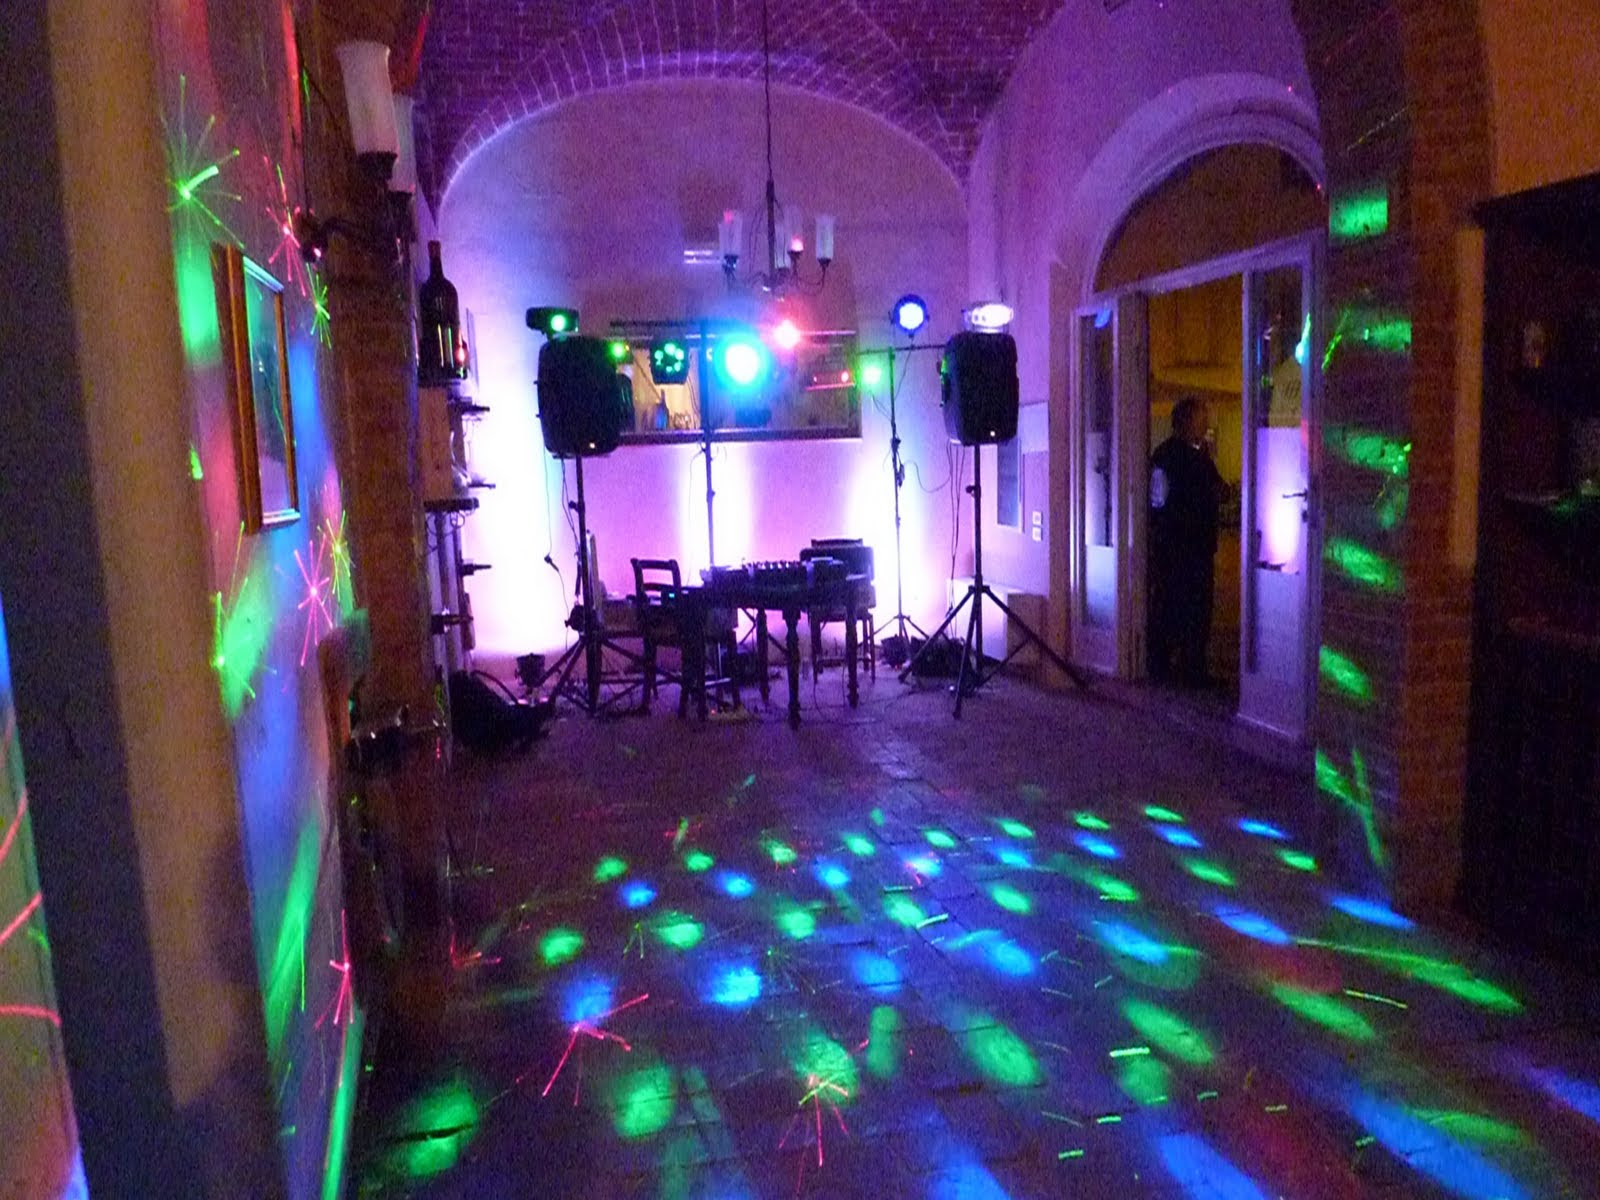 wedding dj Firenze   Mobile dj and Mobile Disco for your party in